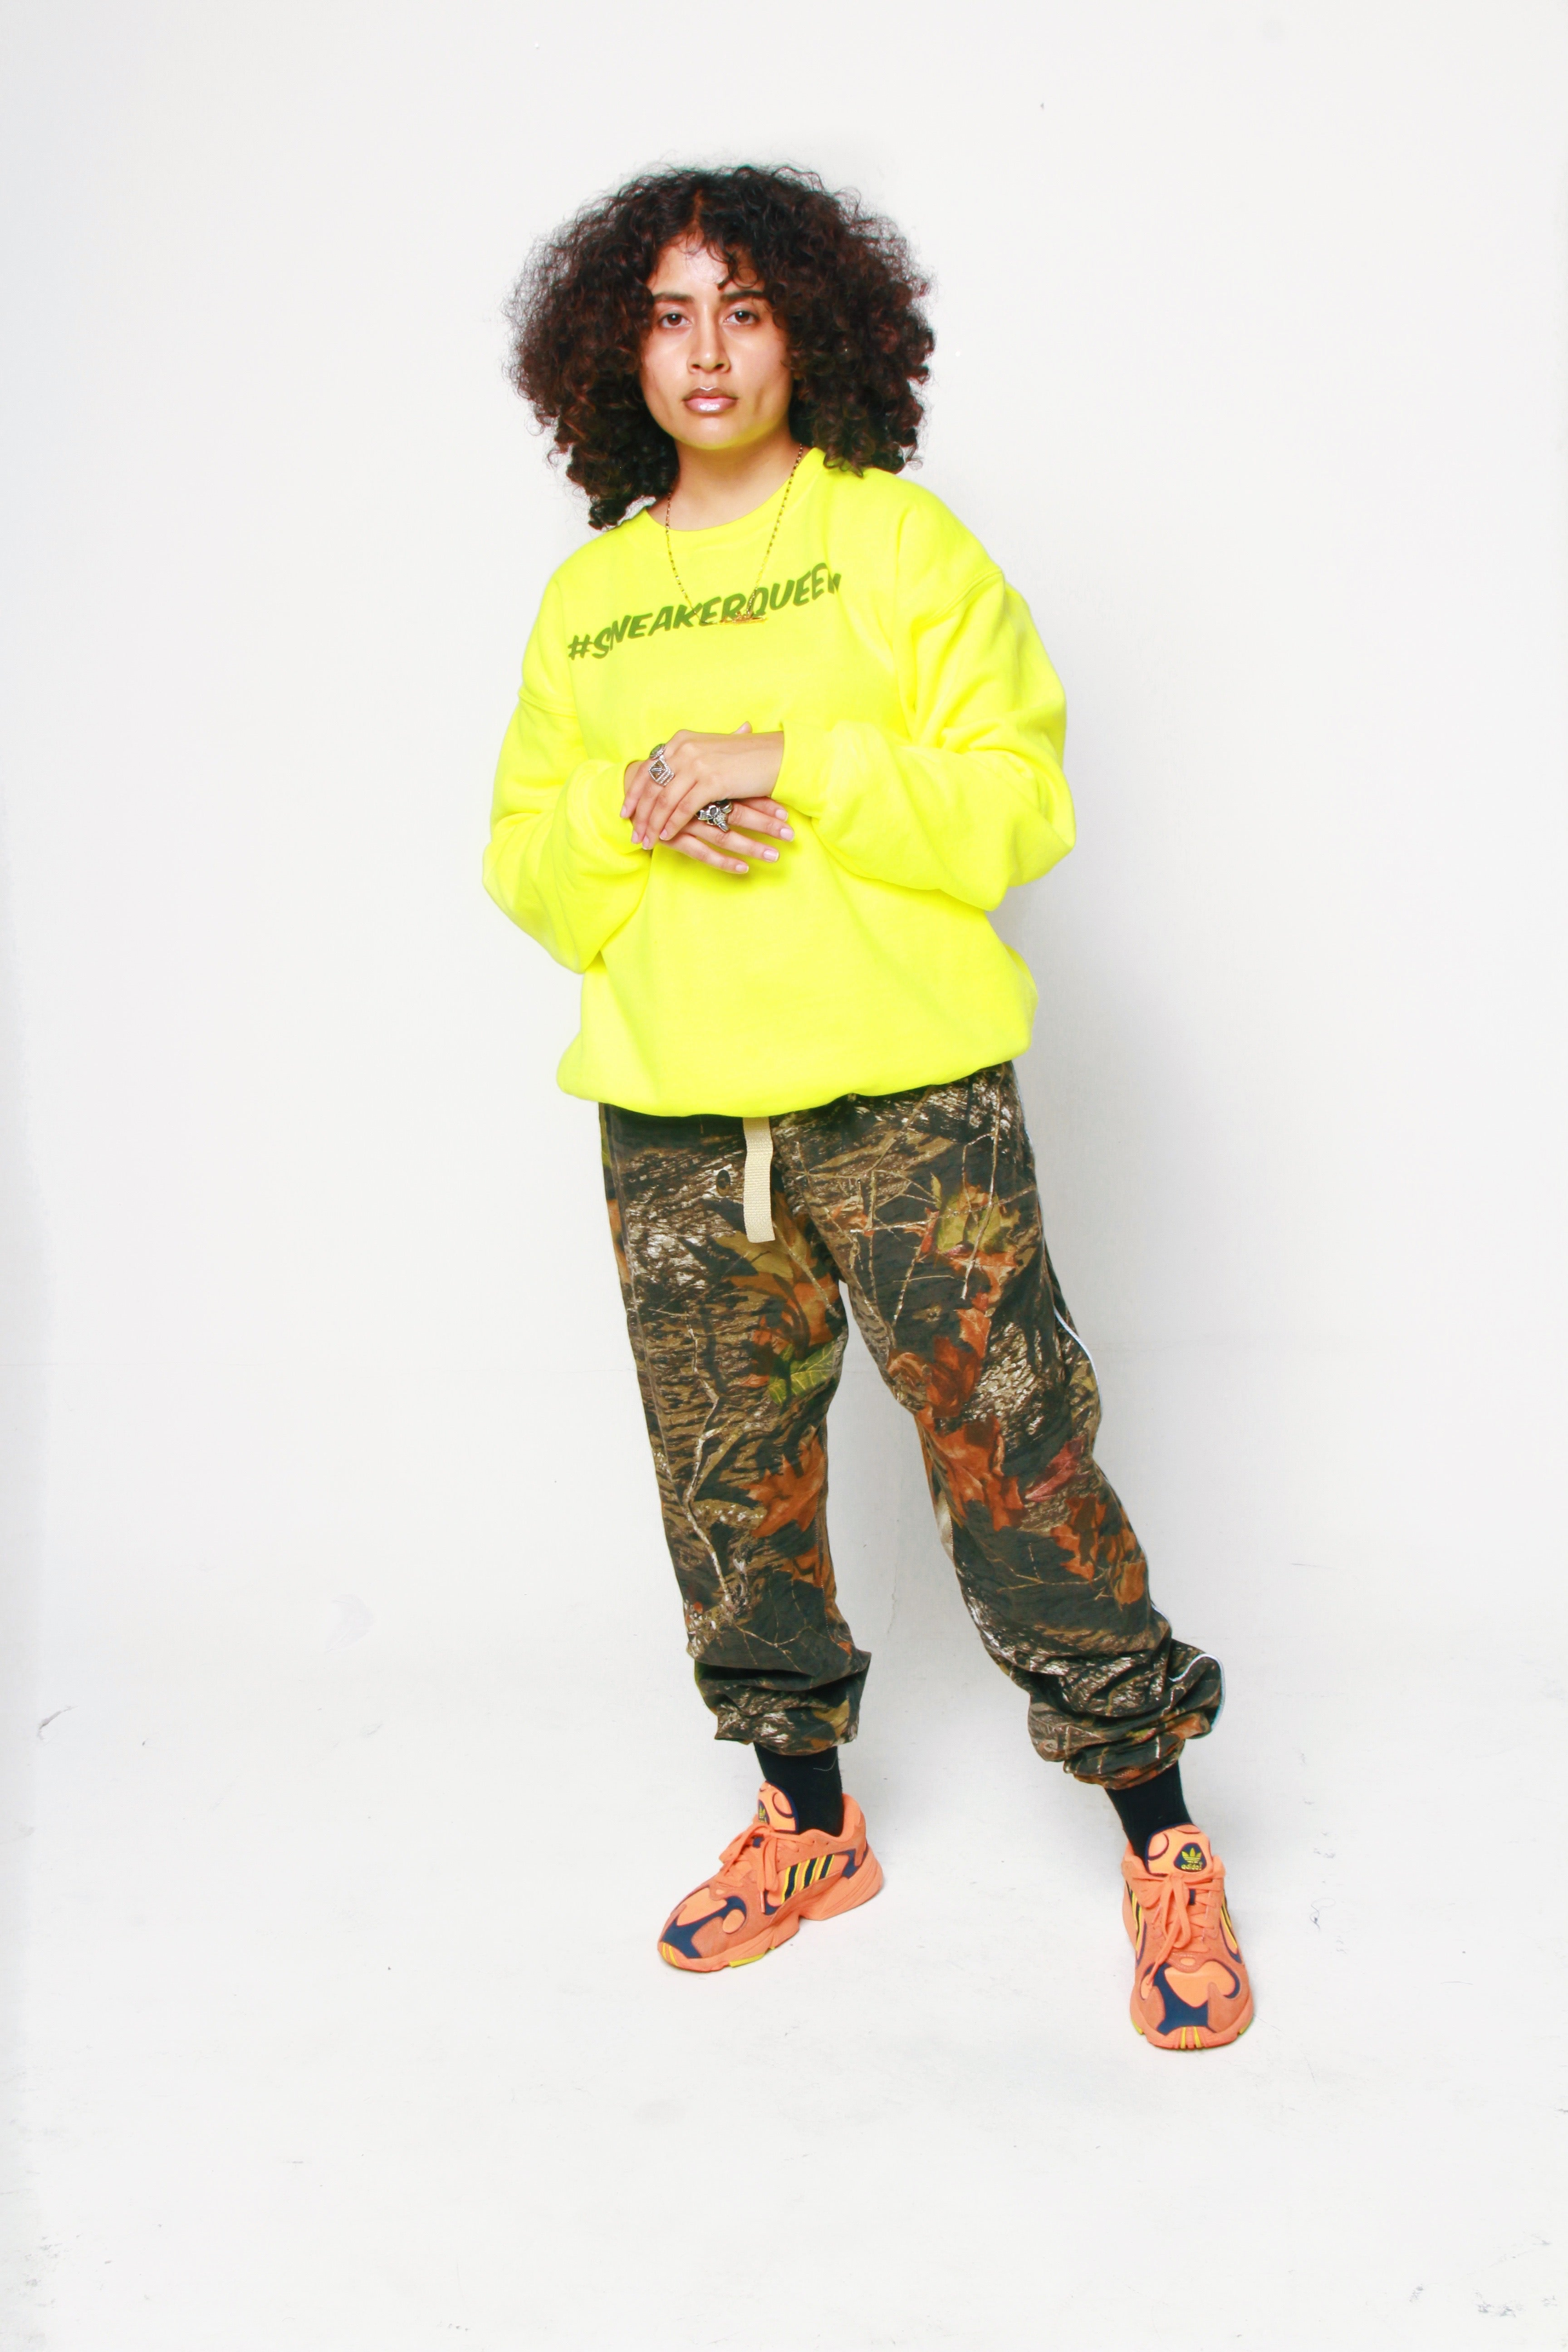 Sneaker Queen Crewneck- Lime Green